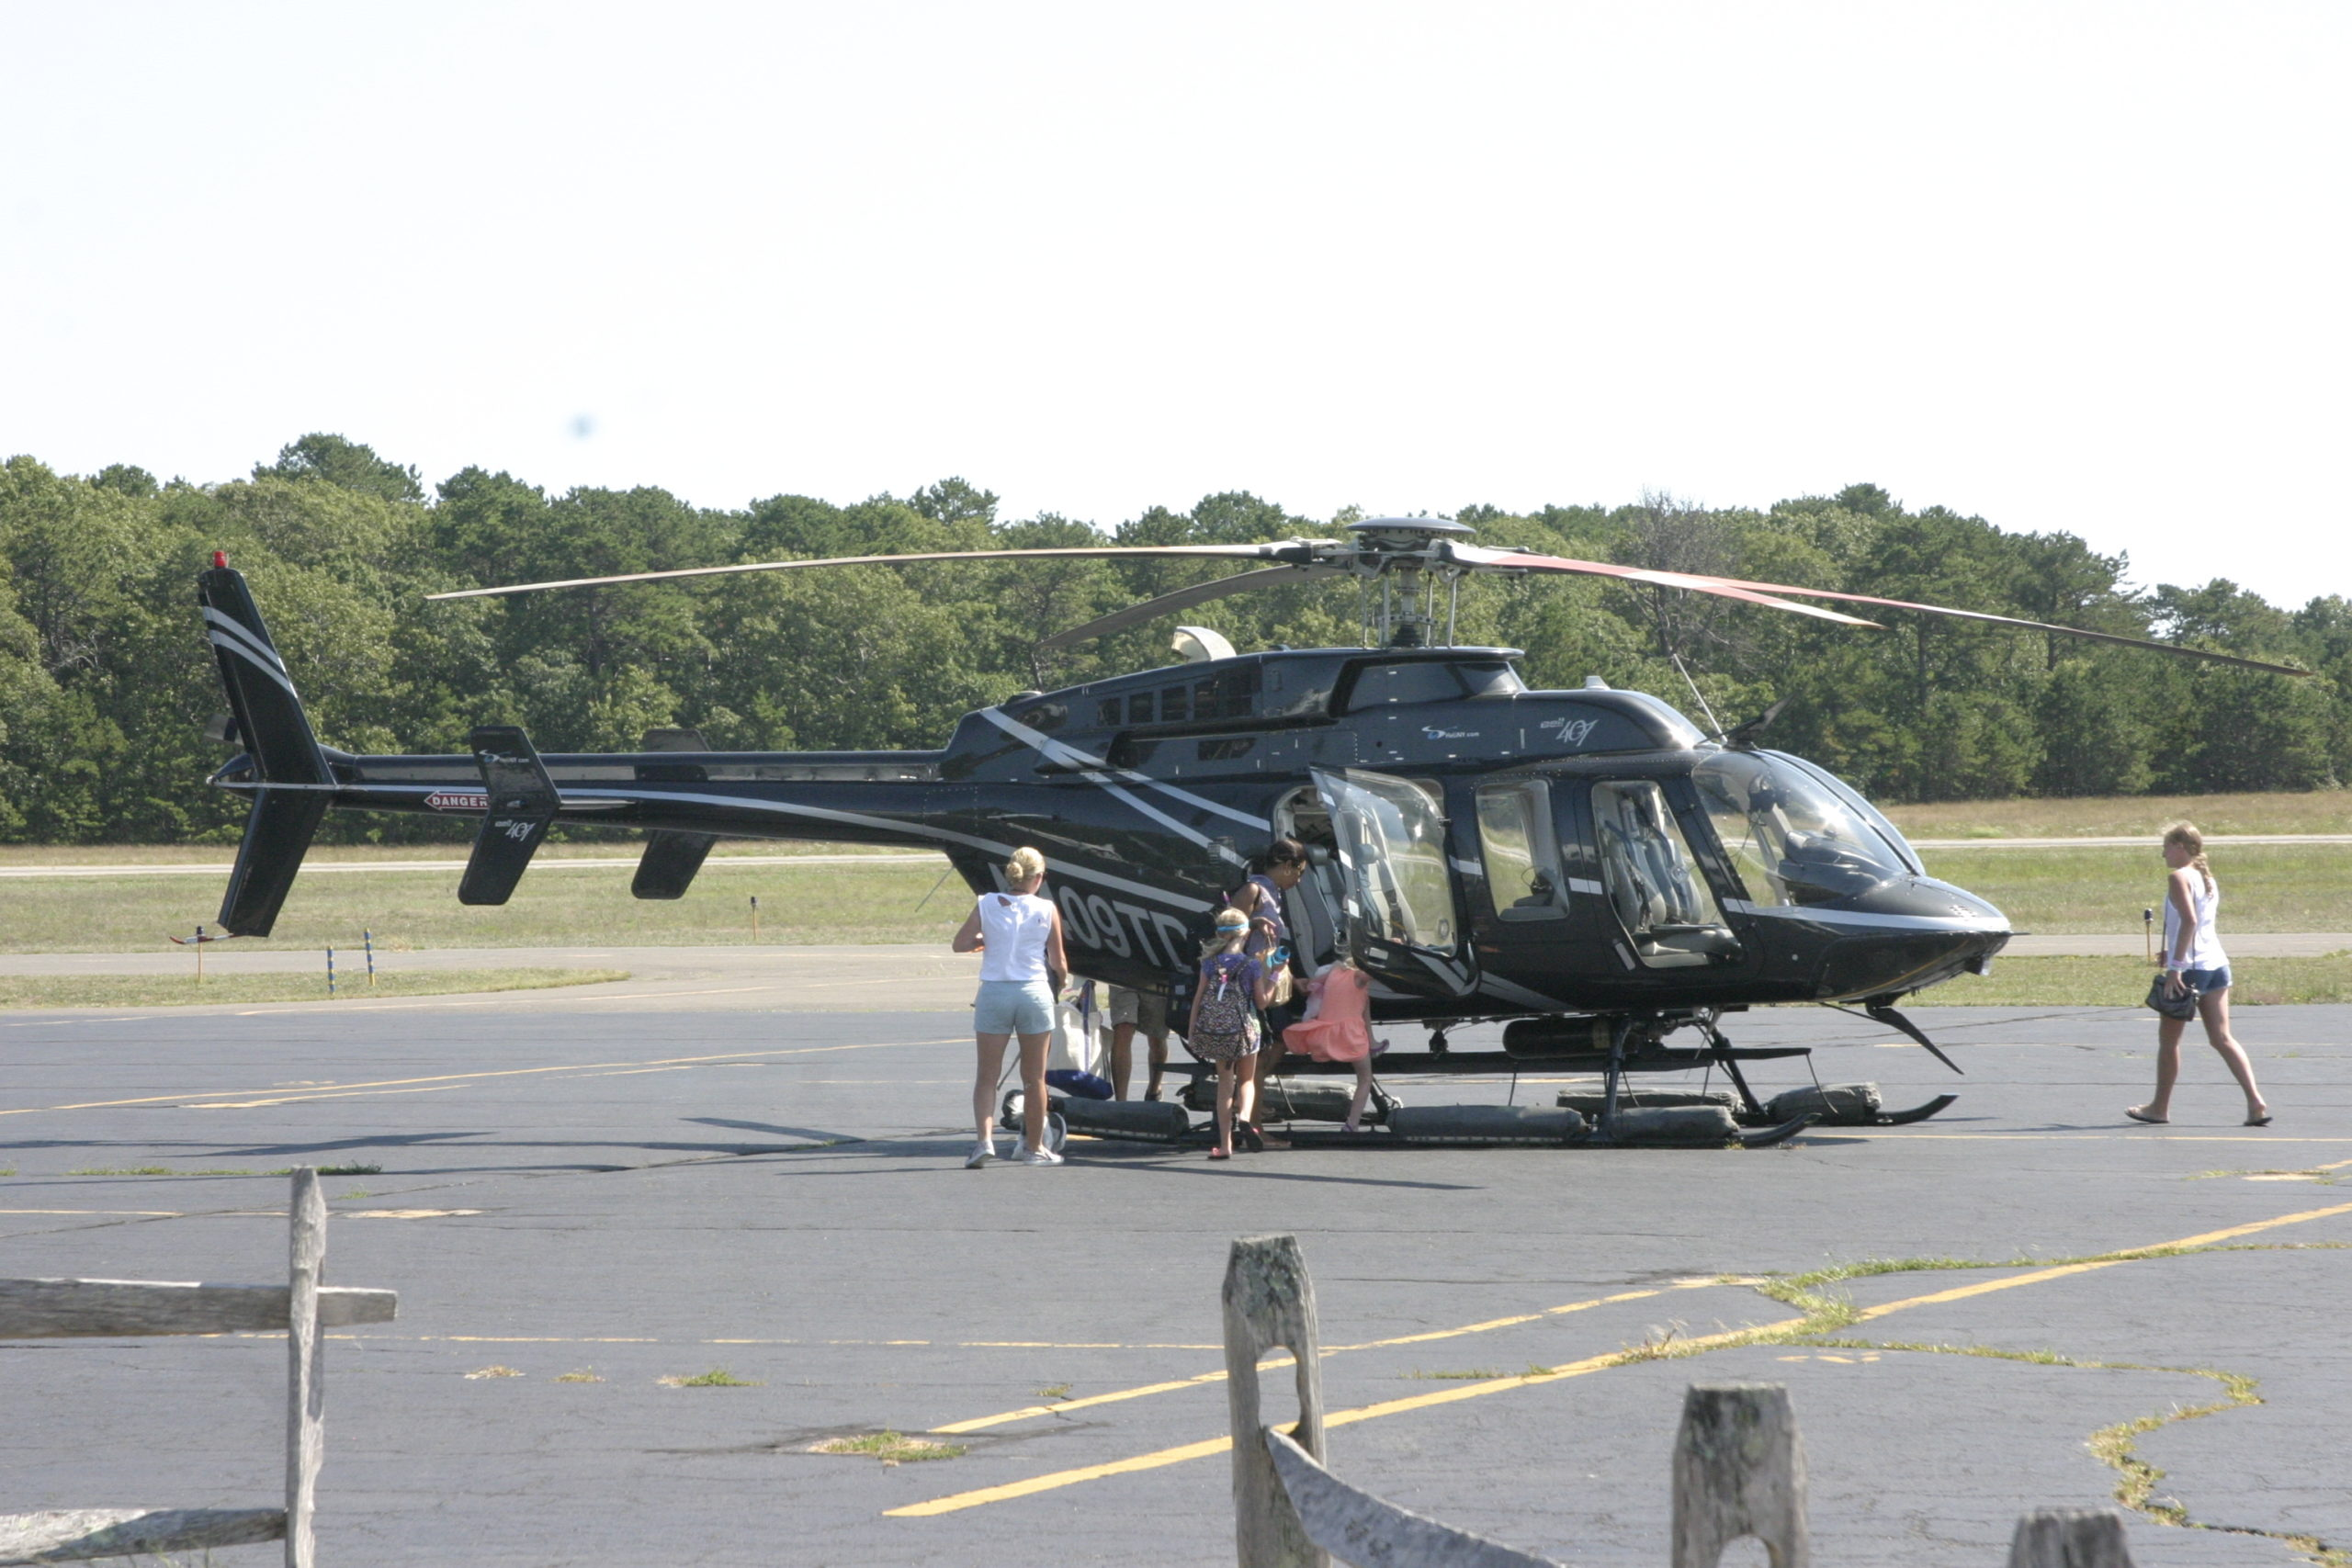 The well-heeled folk who use East Hampton Airport as their entry point to the Hamptons spend more than most visitors, but an economic study commissioned by East Hampton Town says commuting by air might not be as valuable to the town as aviation advocates have claimed.